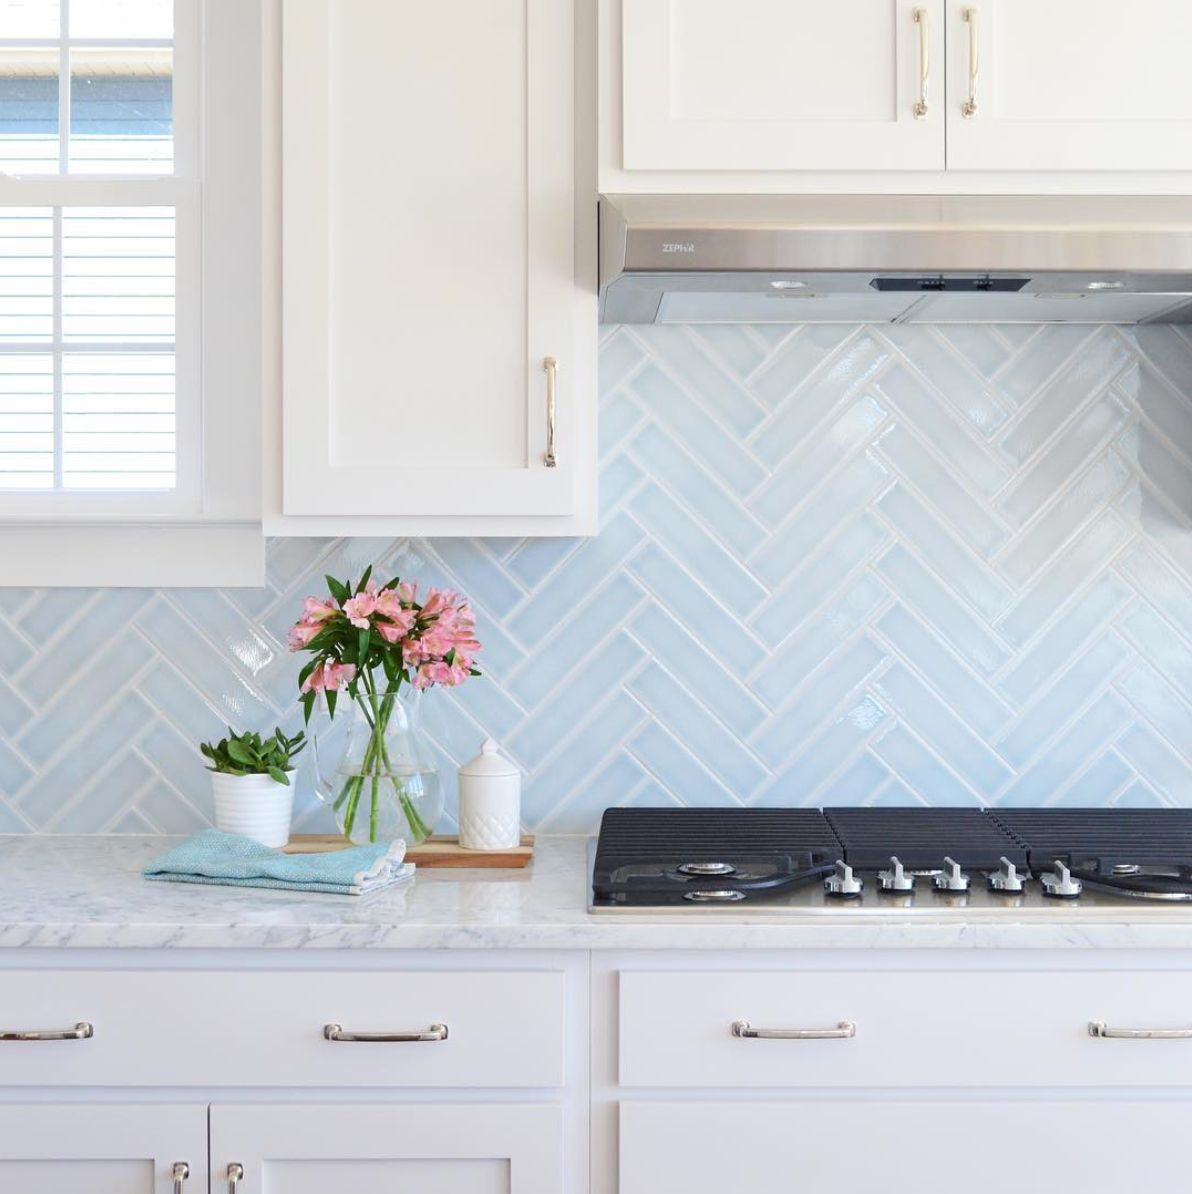 19 kitchen backsplash ideas we\'re completely obsessed with ...